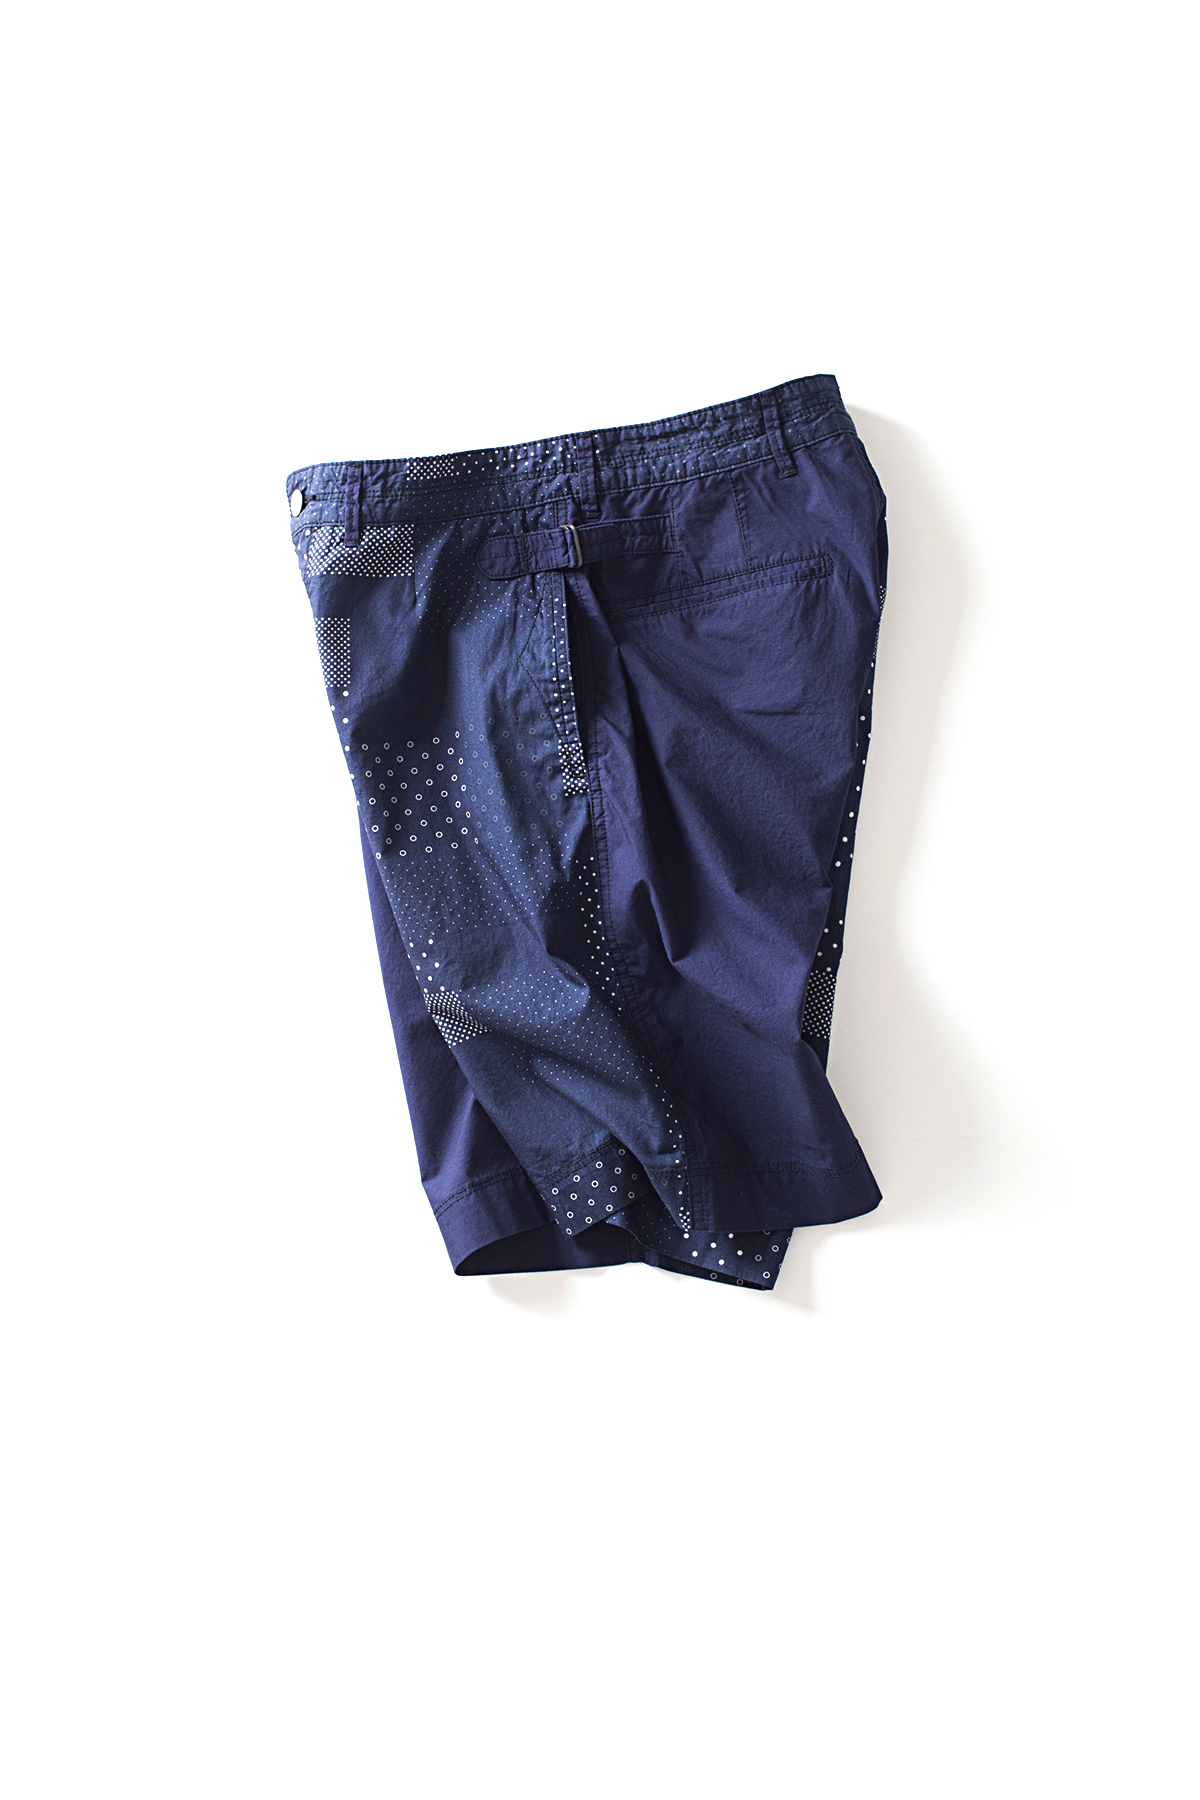 Eastlogue : Officer Shorts (Mixed Dot)